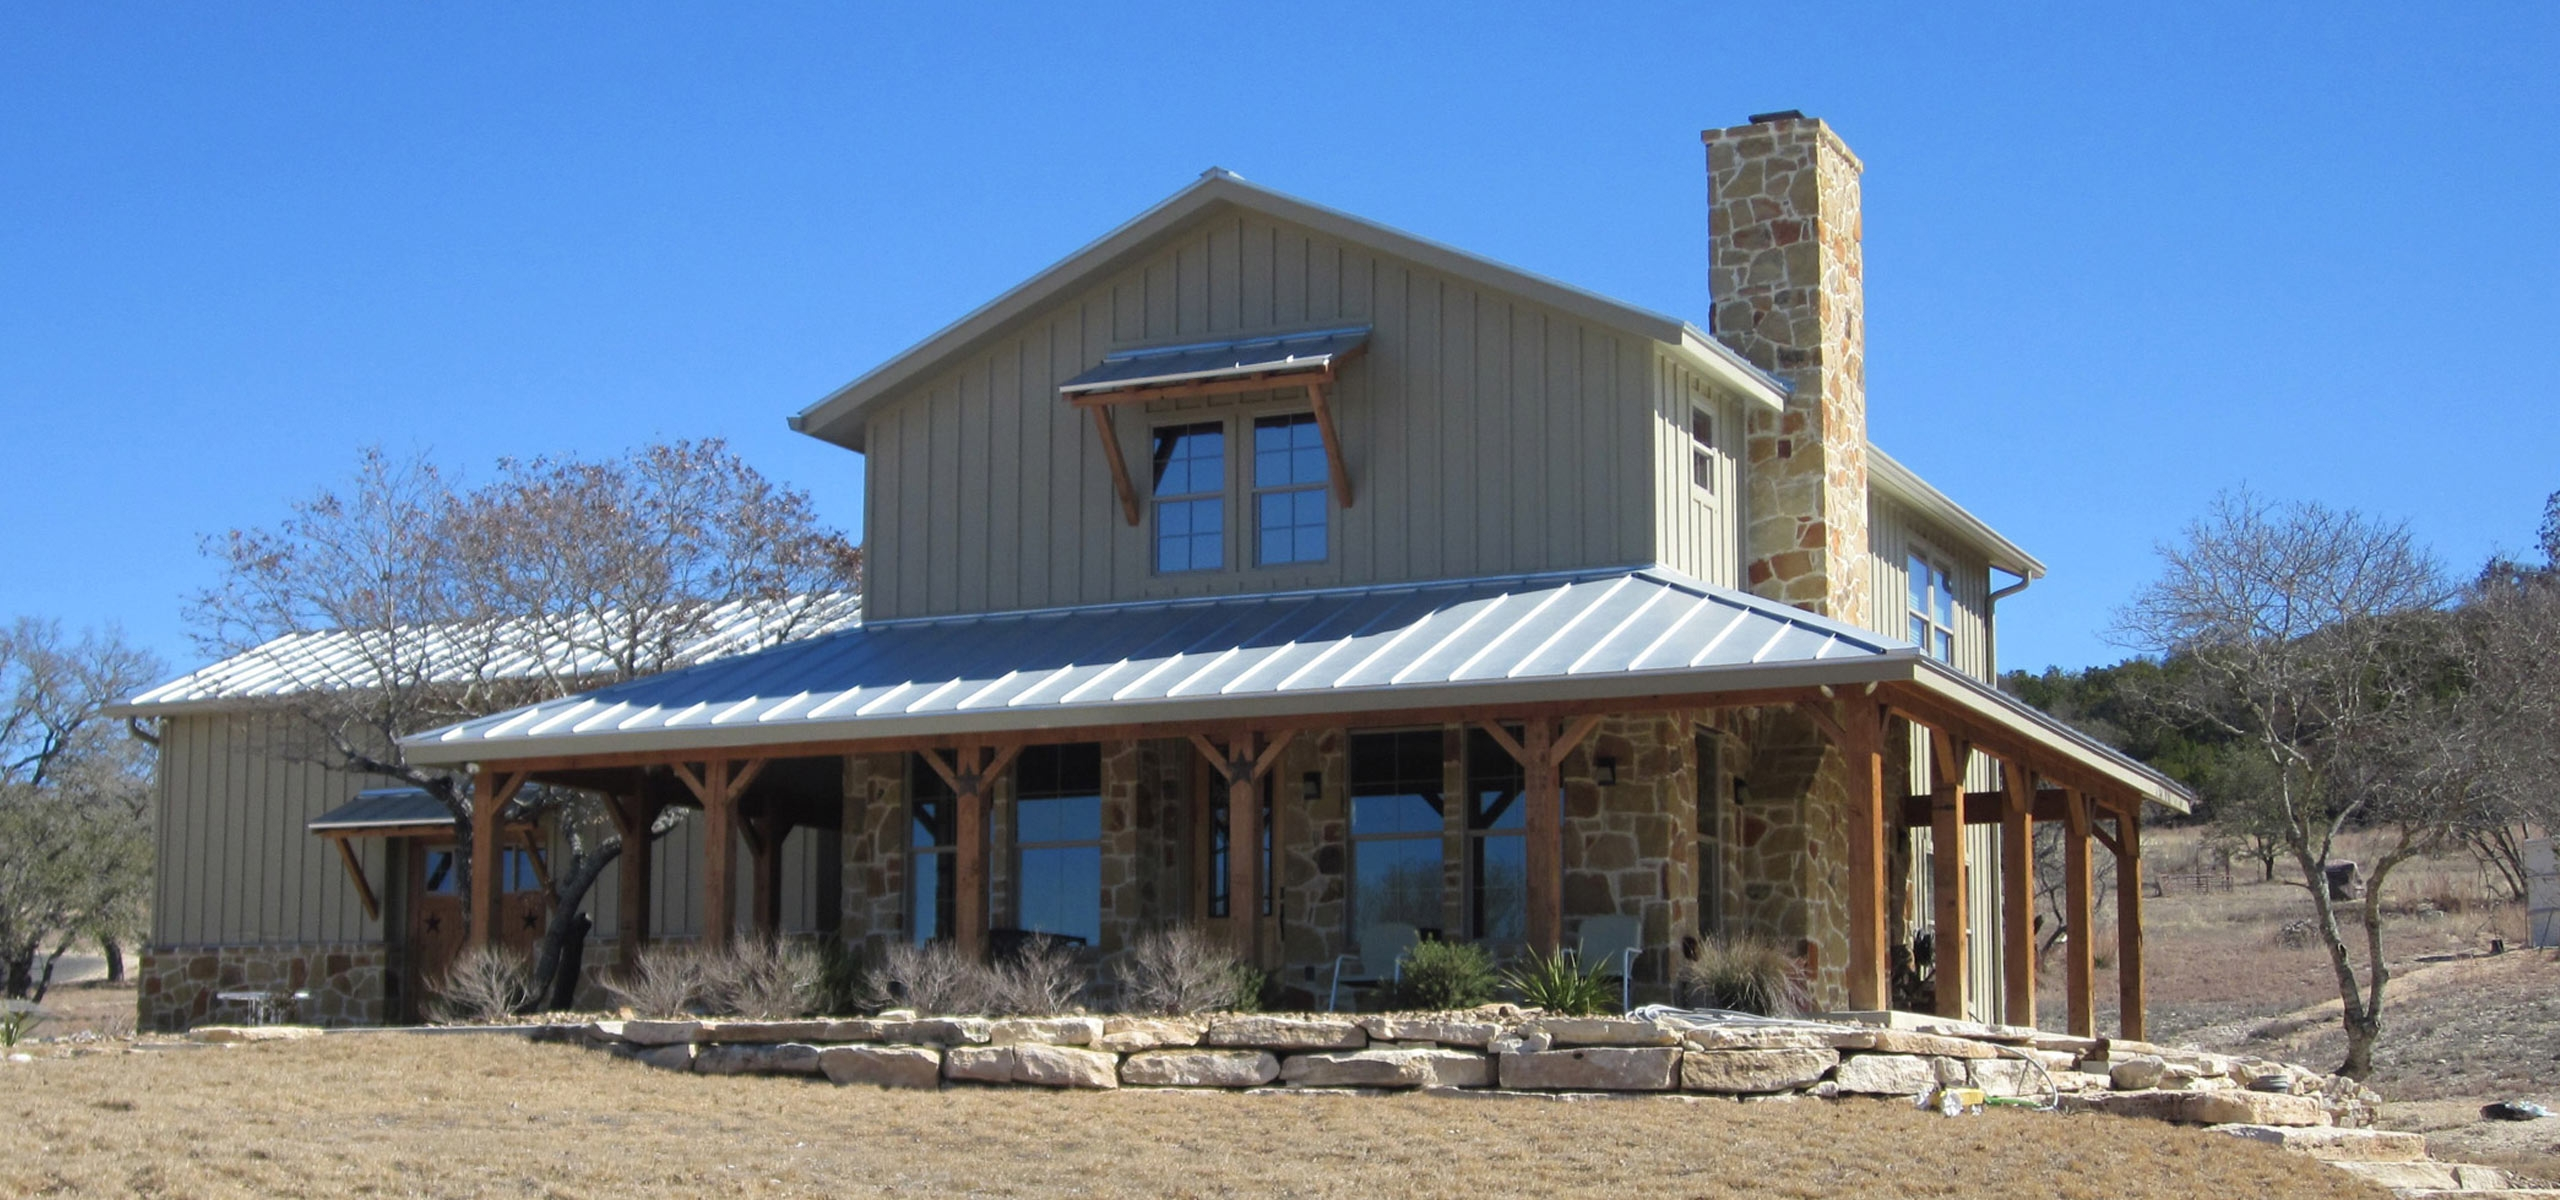 Home texas home plans Texas hill country house designs